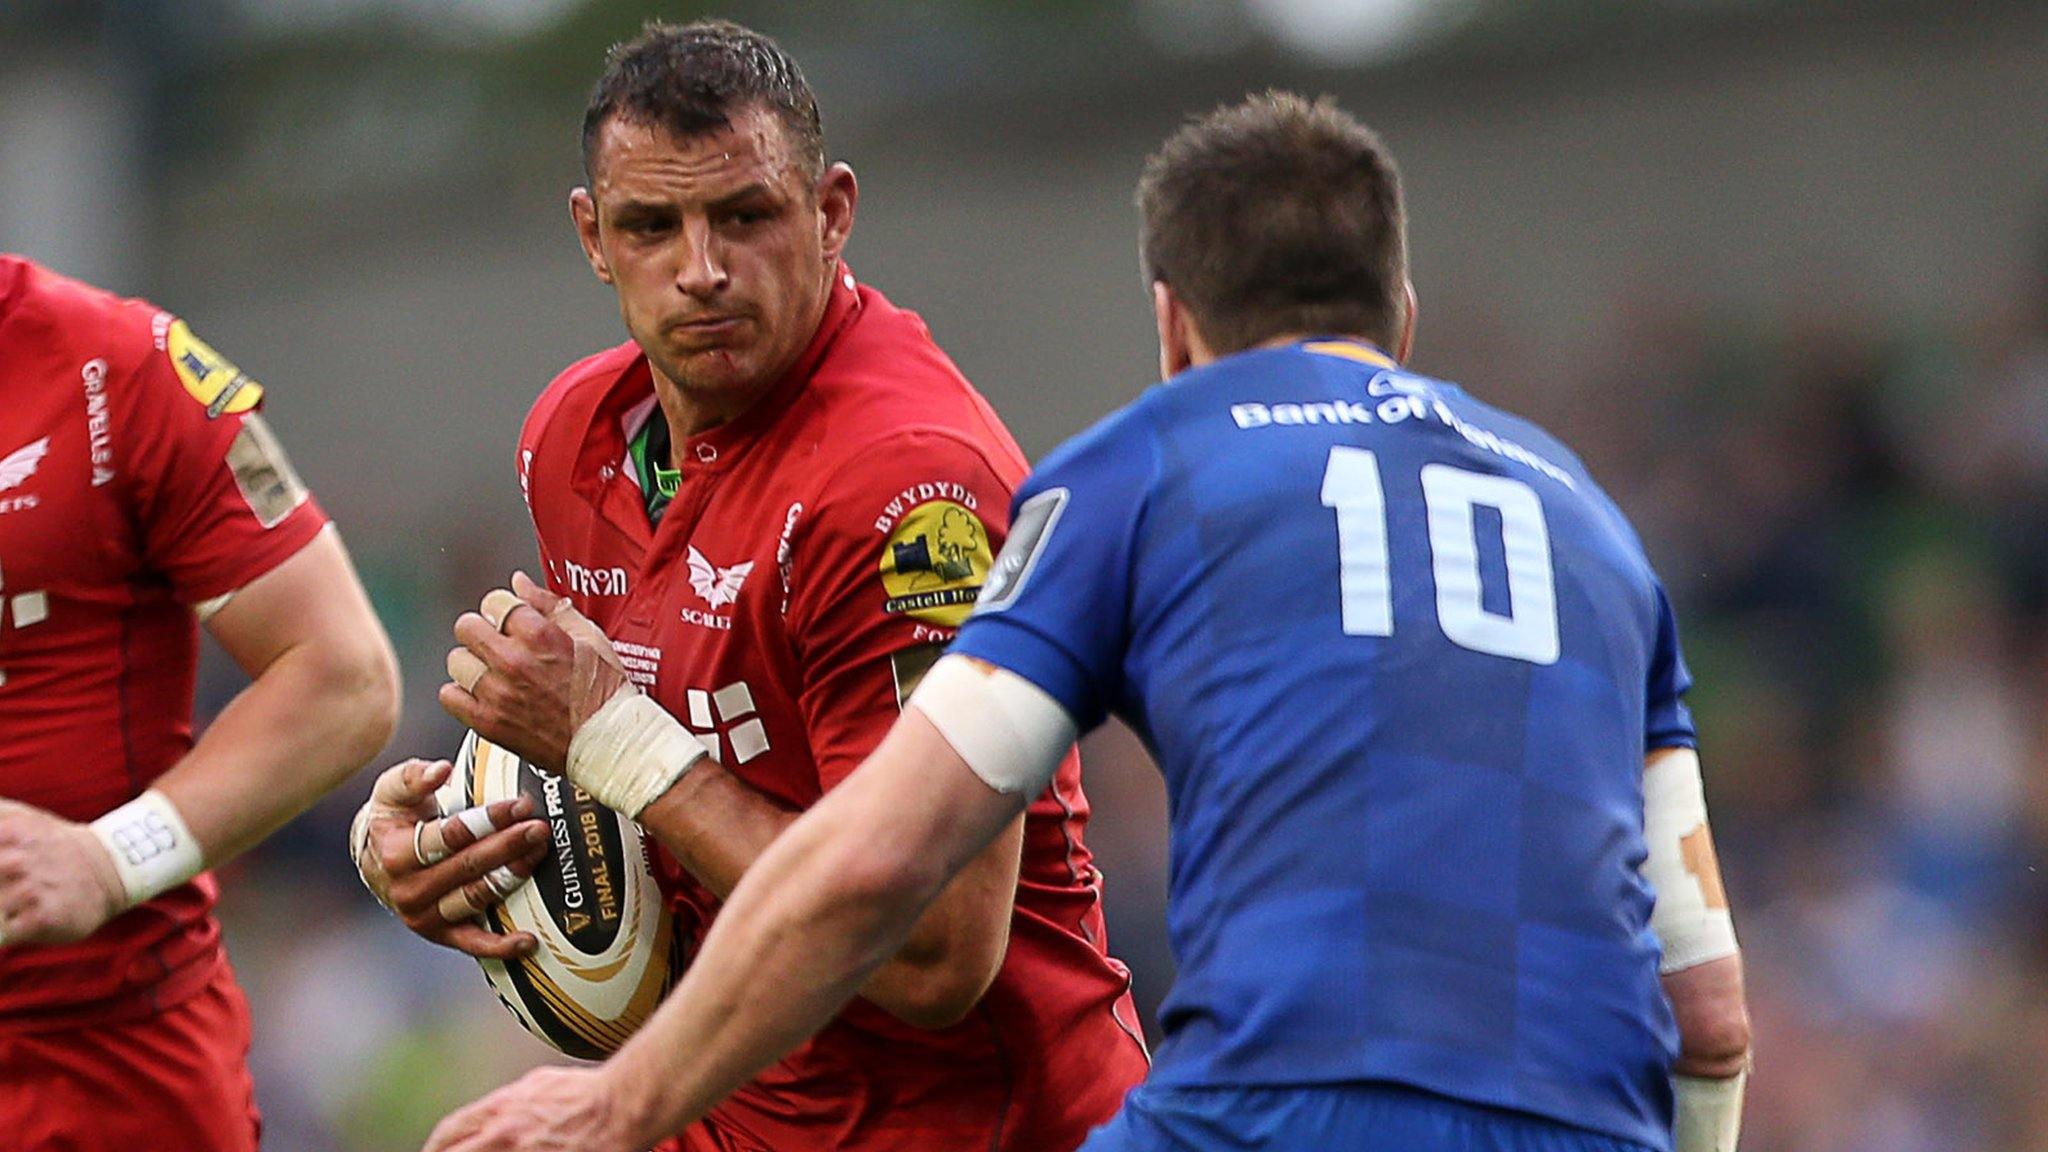 Scarlets' Aaron Shingler a doubt for Wales summer tour